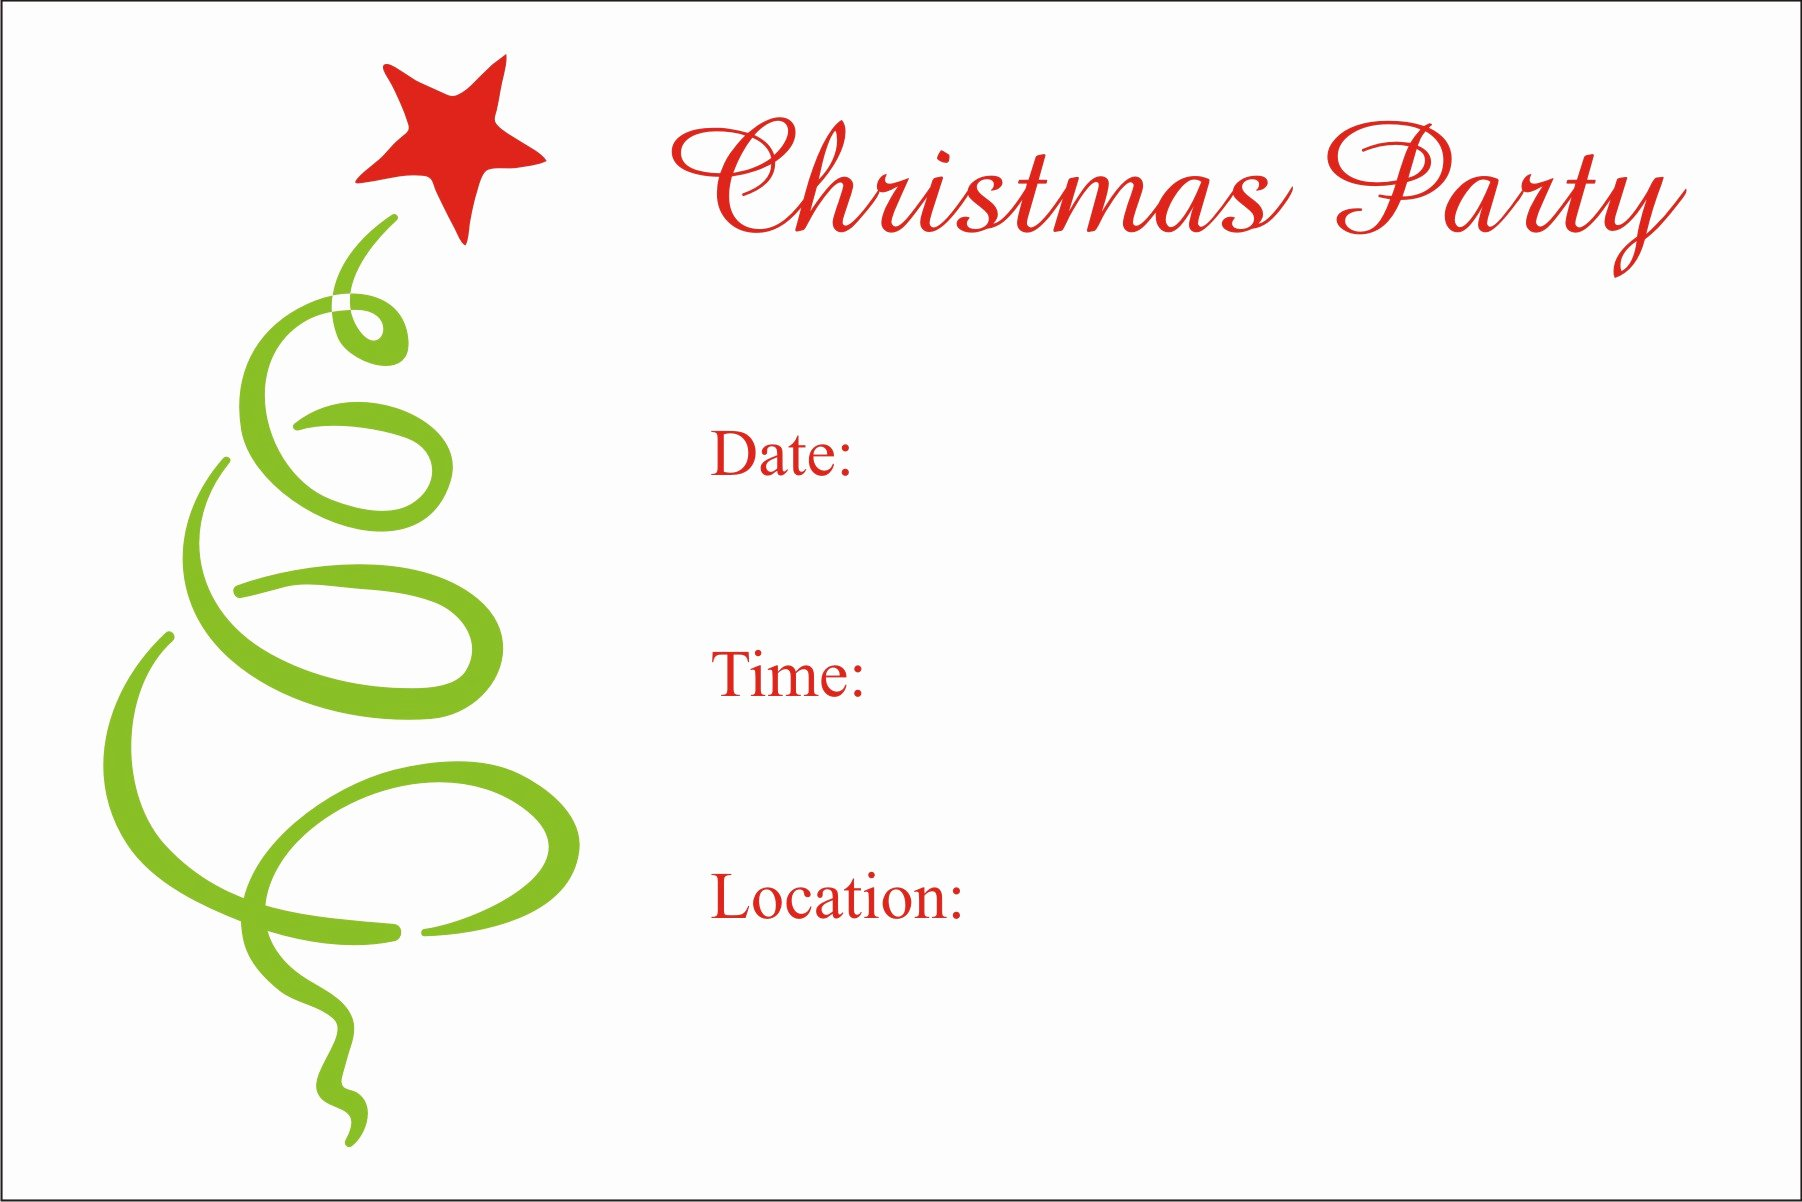 Christmas Party Invitation Template Free Unique Christmas Party Free Printable Holiday Invitation